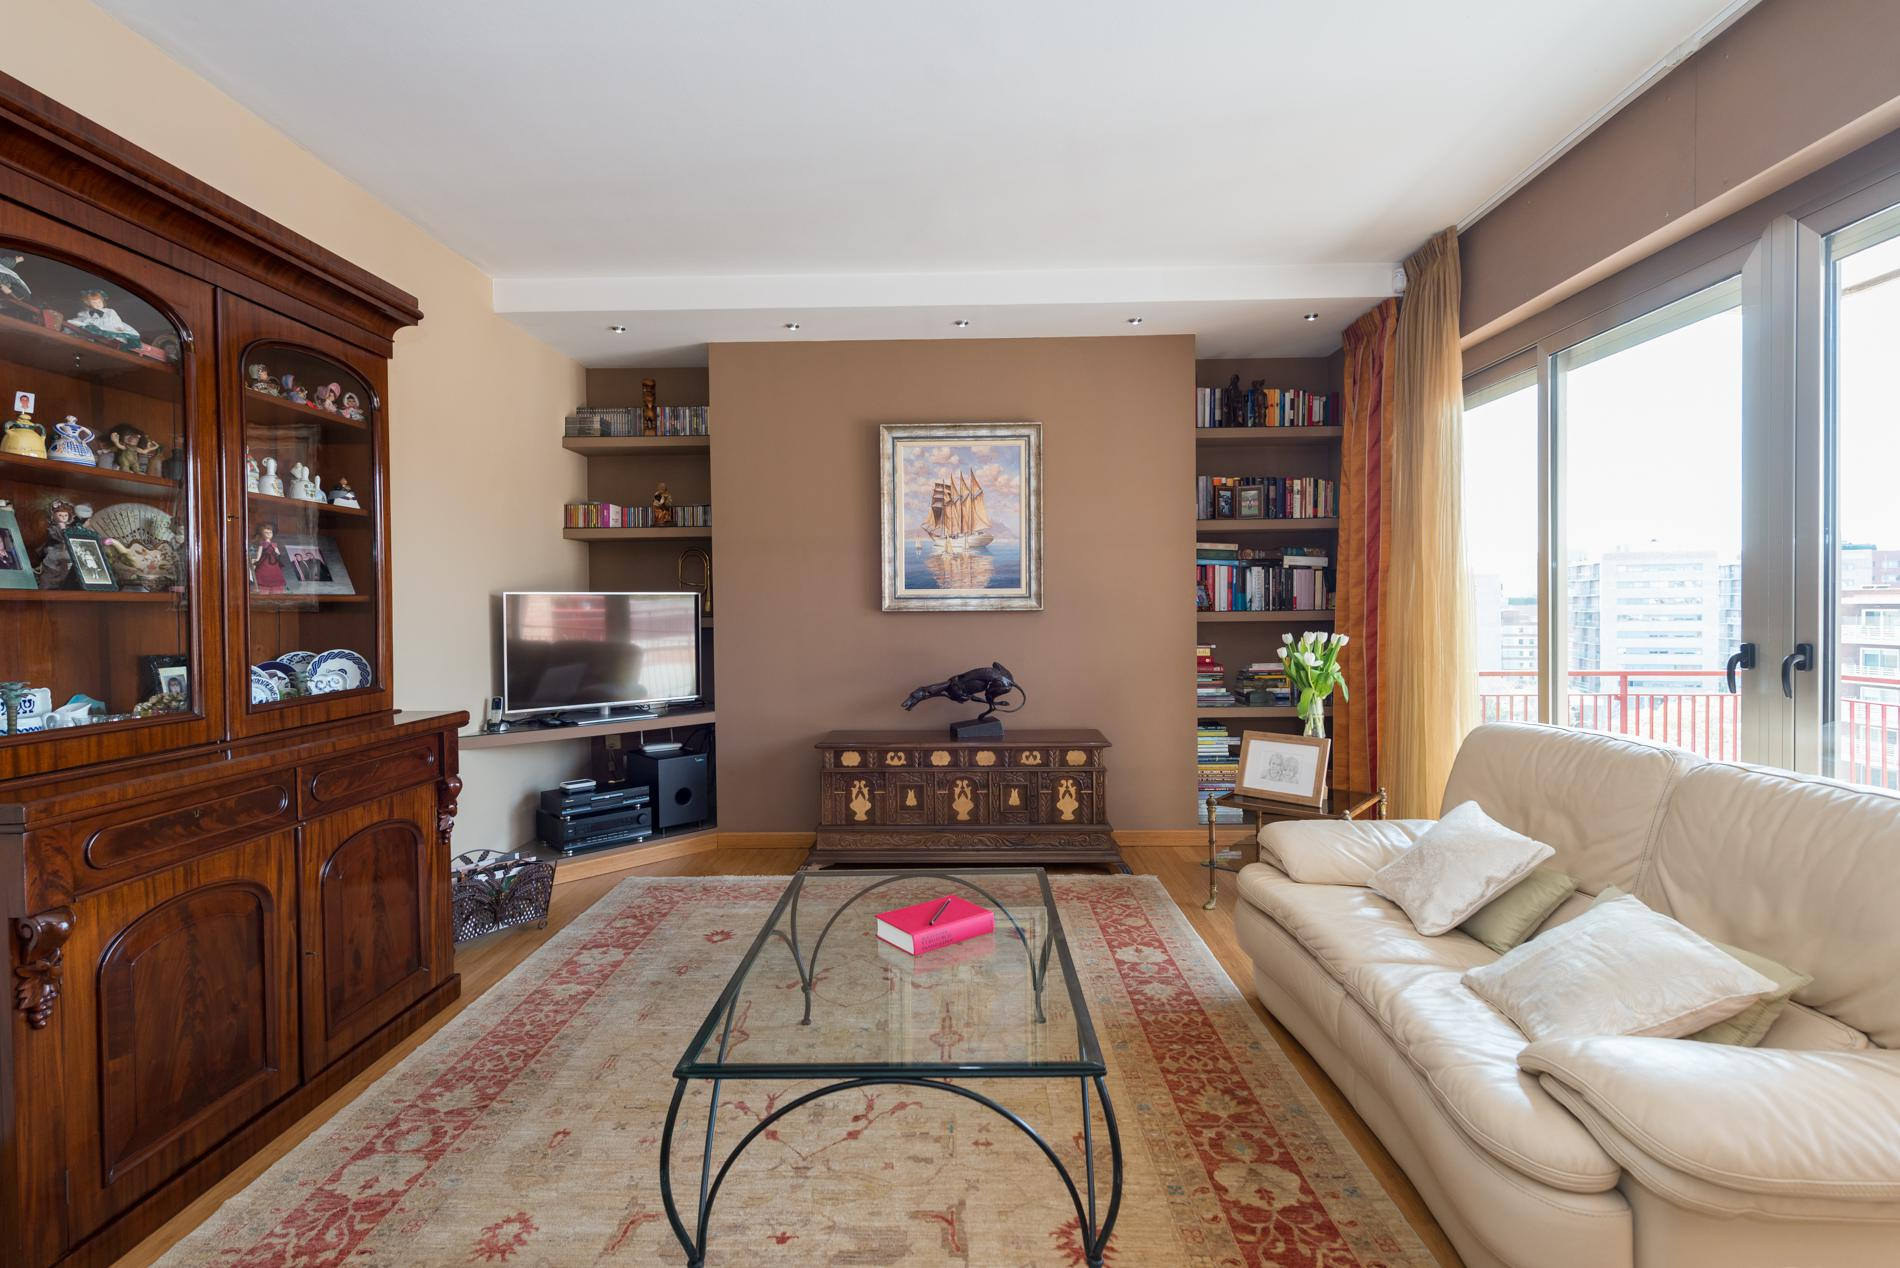 243582 Penthouse for sale in Sarrià-Sant Gervasi, Sant Gervasi-Galvany 4